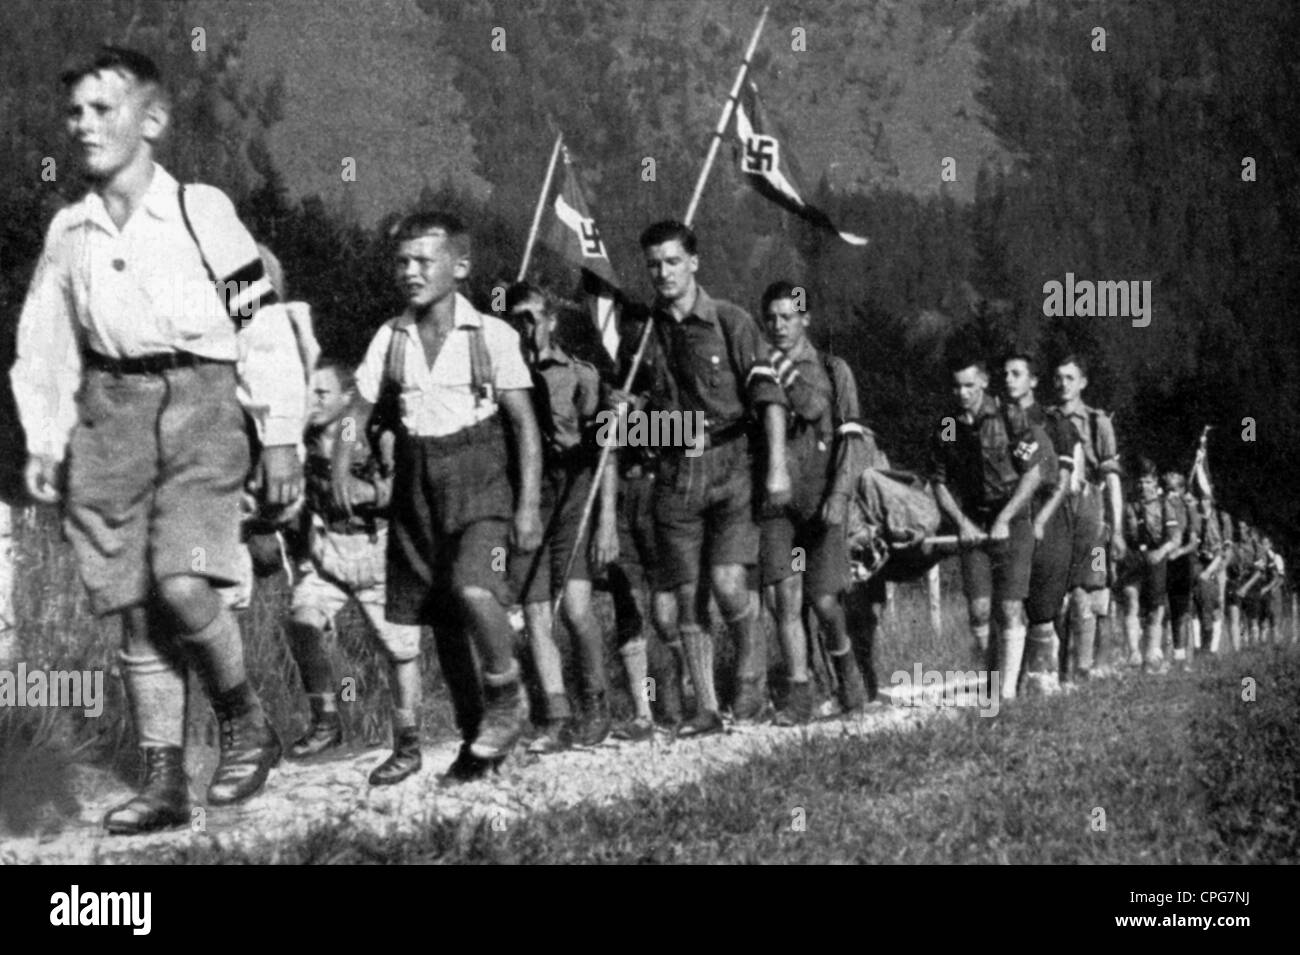 nazi youth 1939 - 1945 on september 1st, 1939, hitler's armies invaded poland six years of war would follow with the full participation of the hitler youth eventually down to the youngest child.